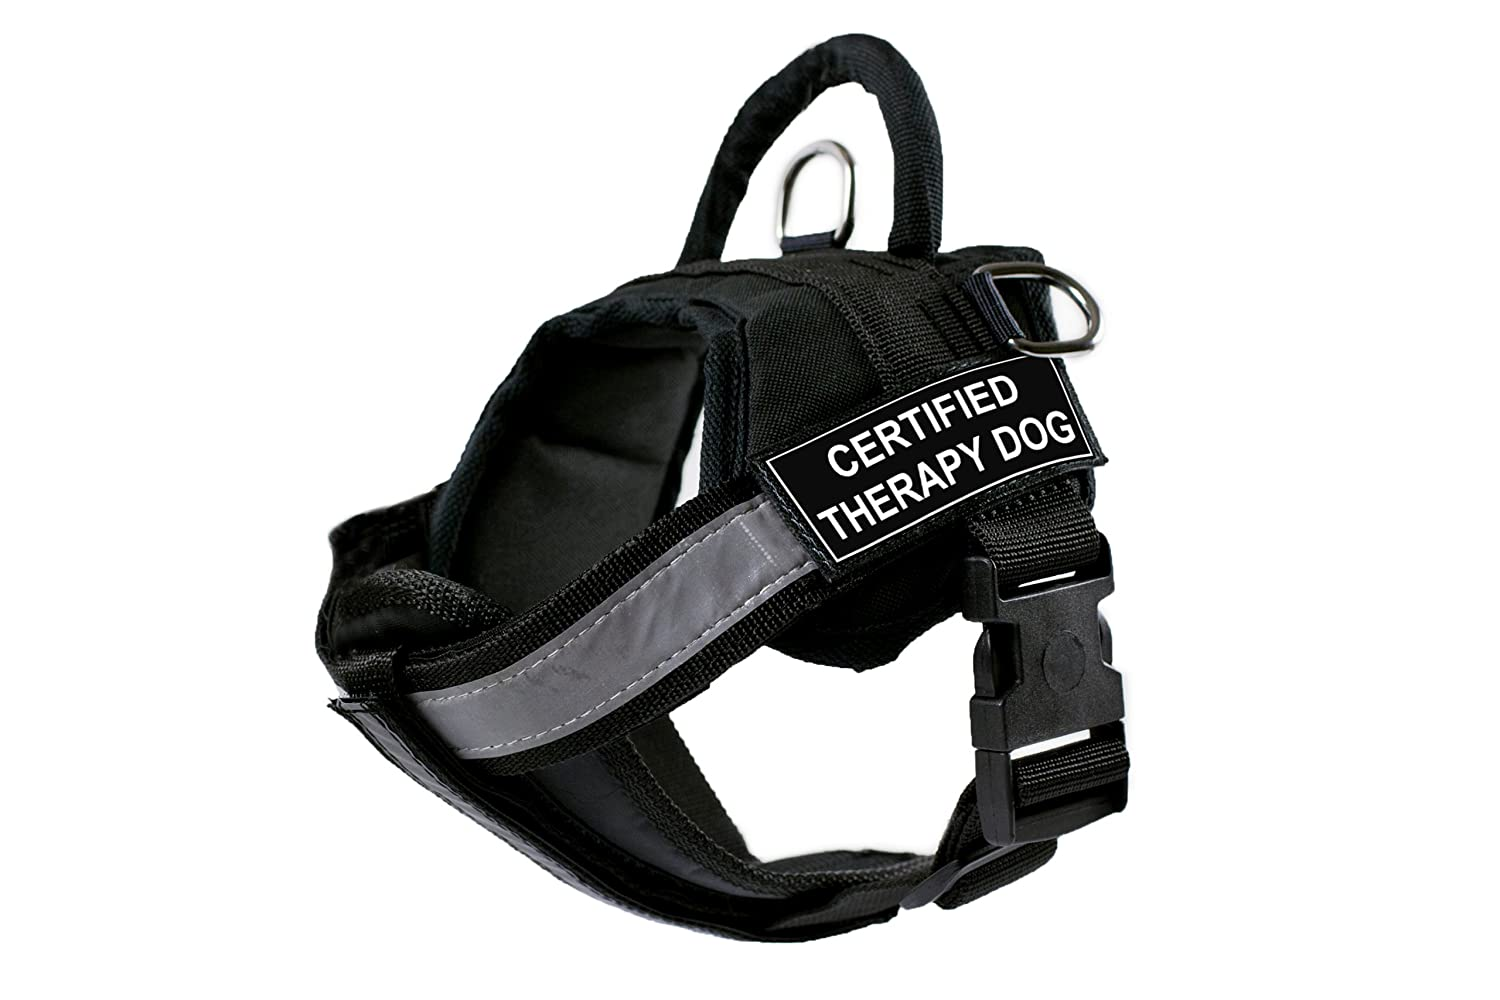 DT Works Harness with Padded Reflective Chest Straps, Certified Therapy Dog, Black, Small, Fits Girth Size  25-Inch to 34-Inch